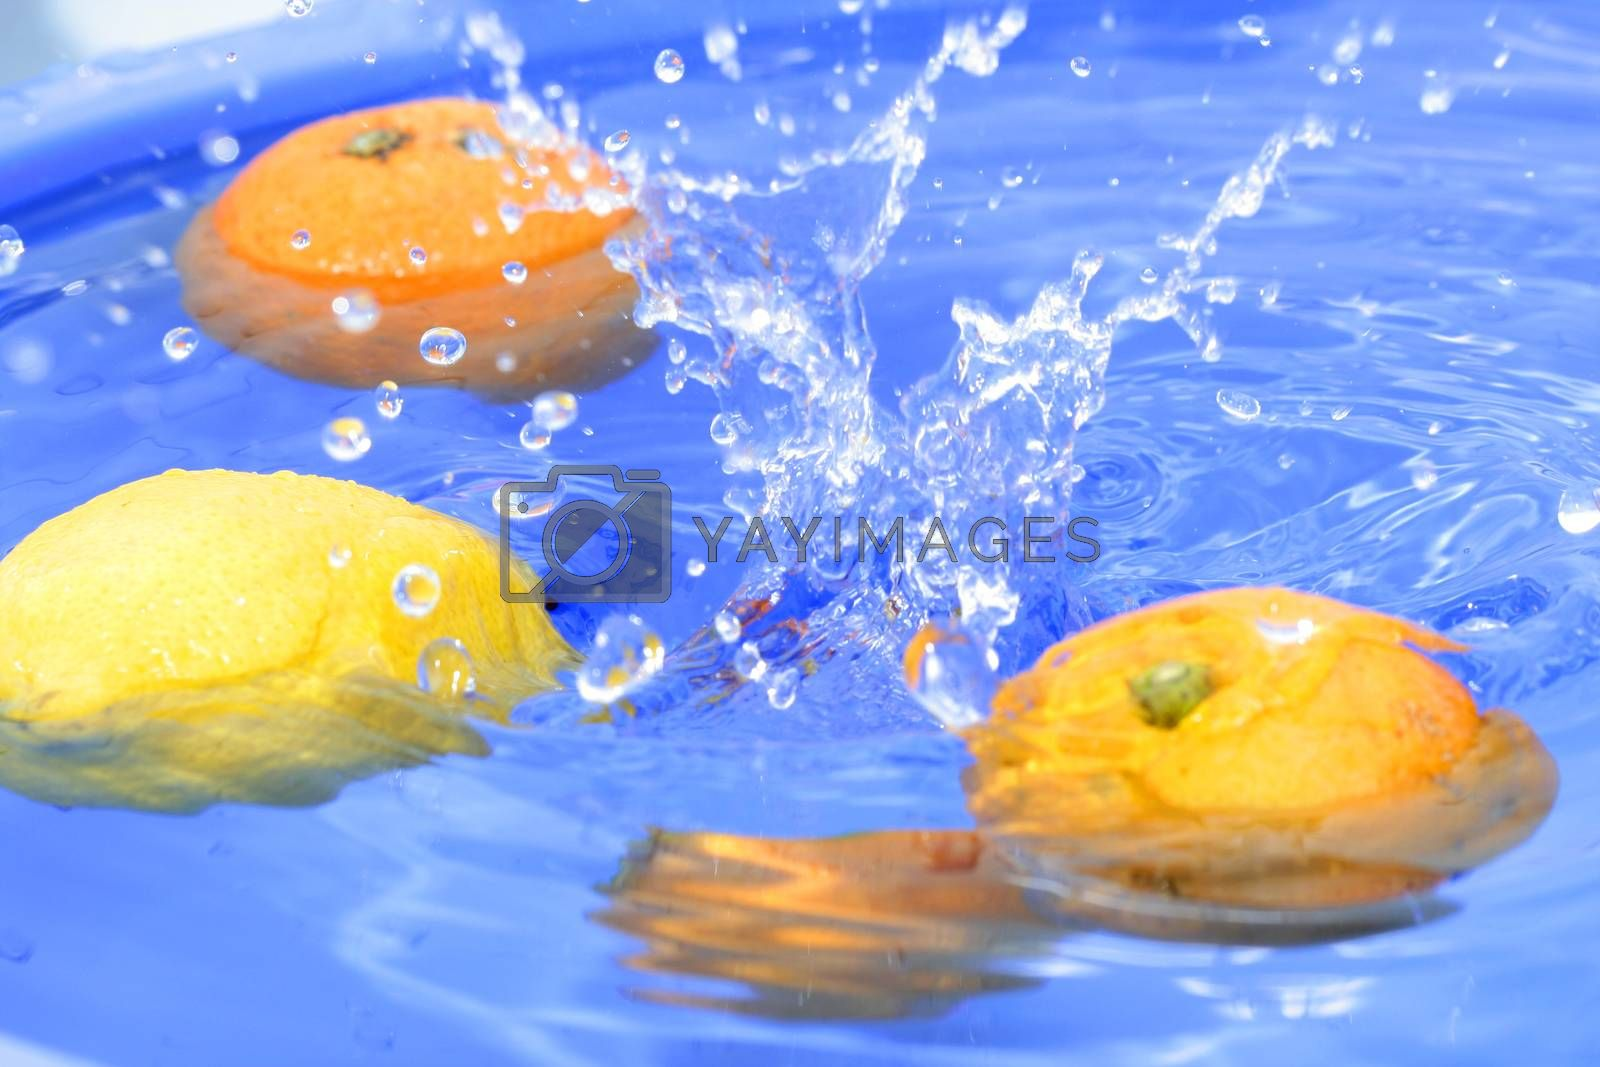 Oranges and lemons in water